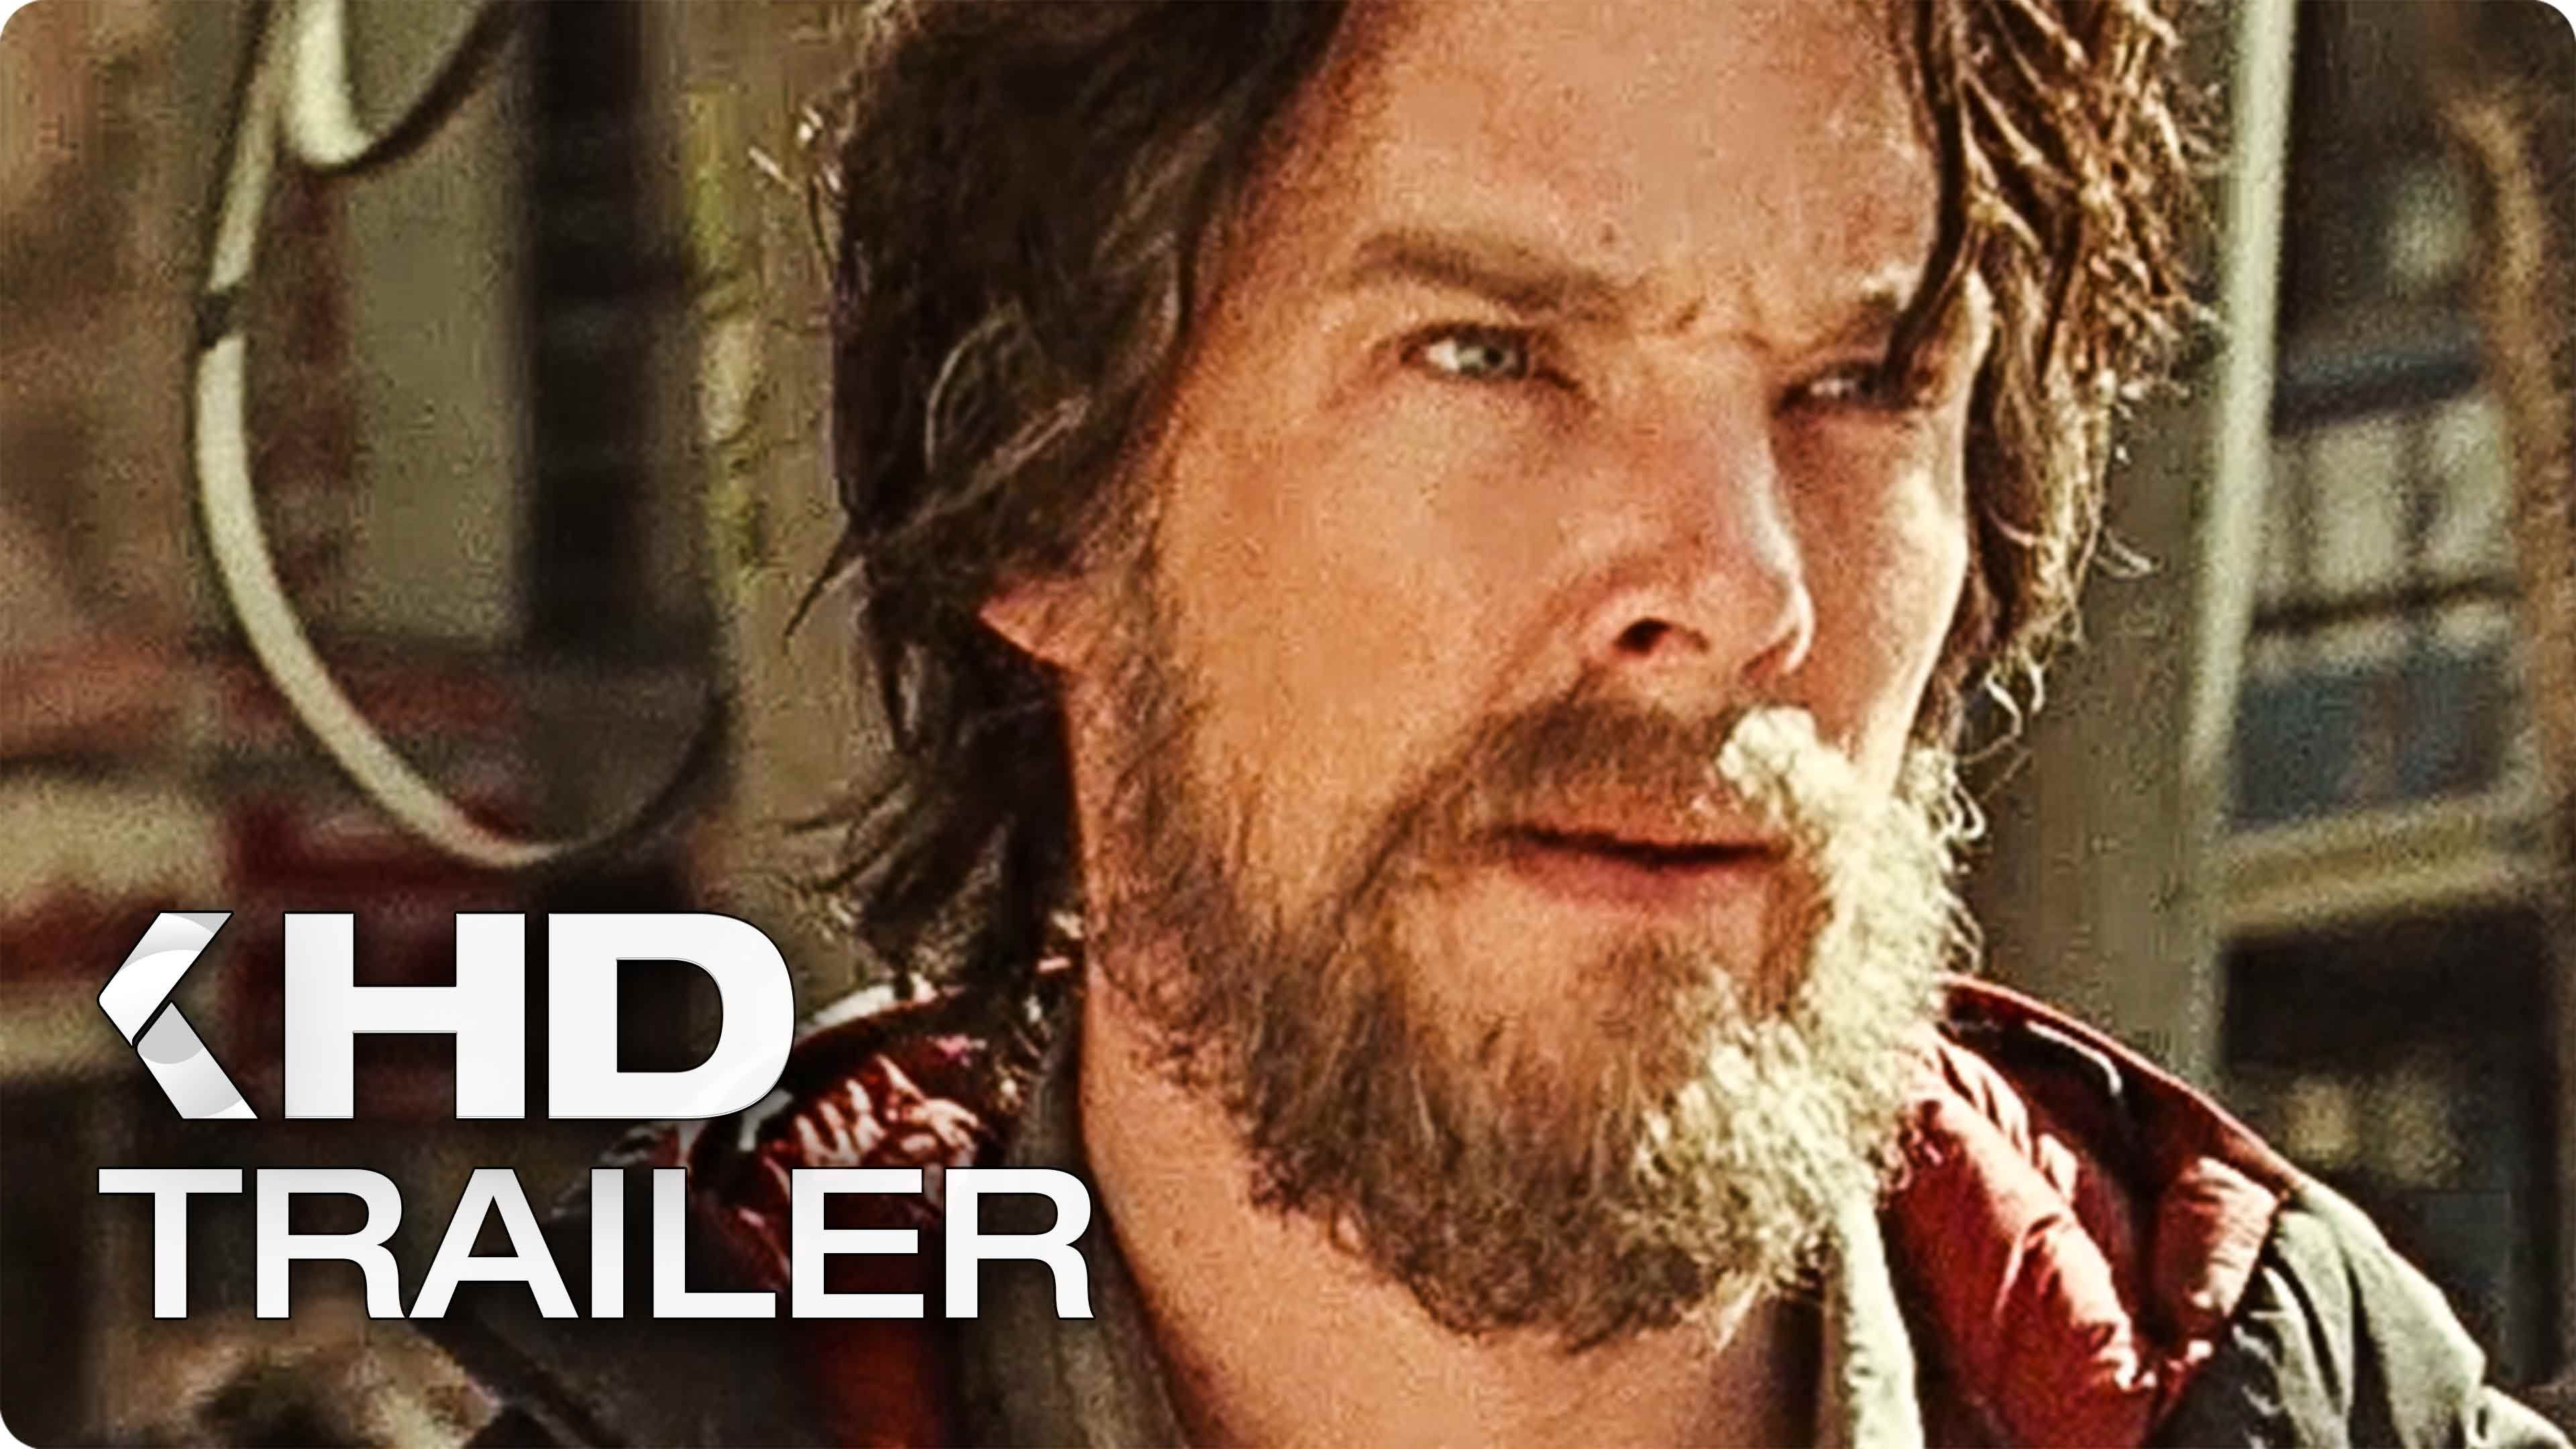 VIDEO DOCTOR STRANGE Trailer (2016) (With images